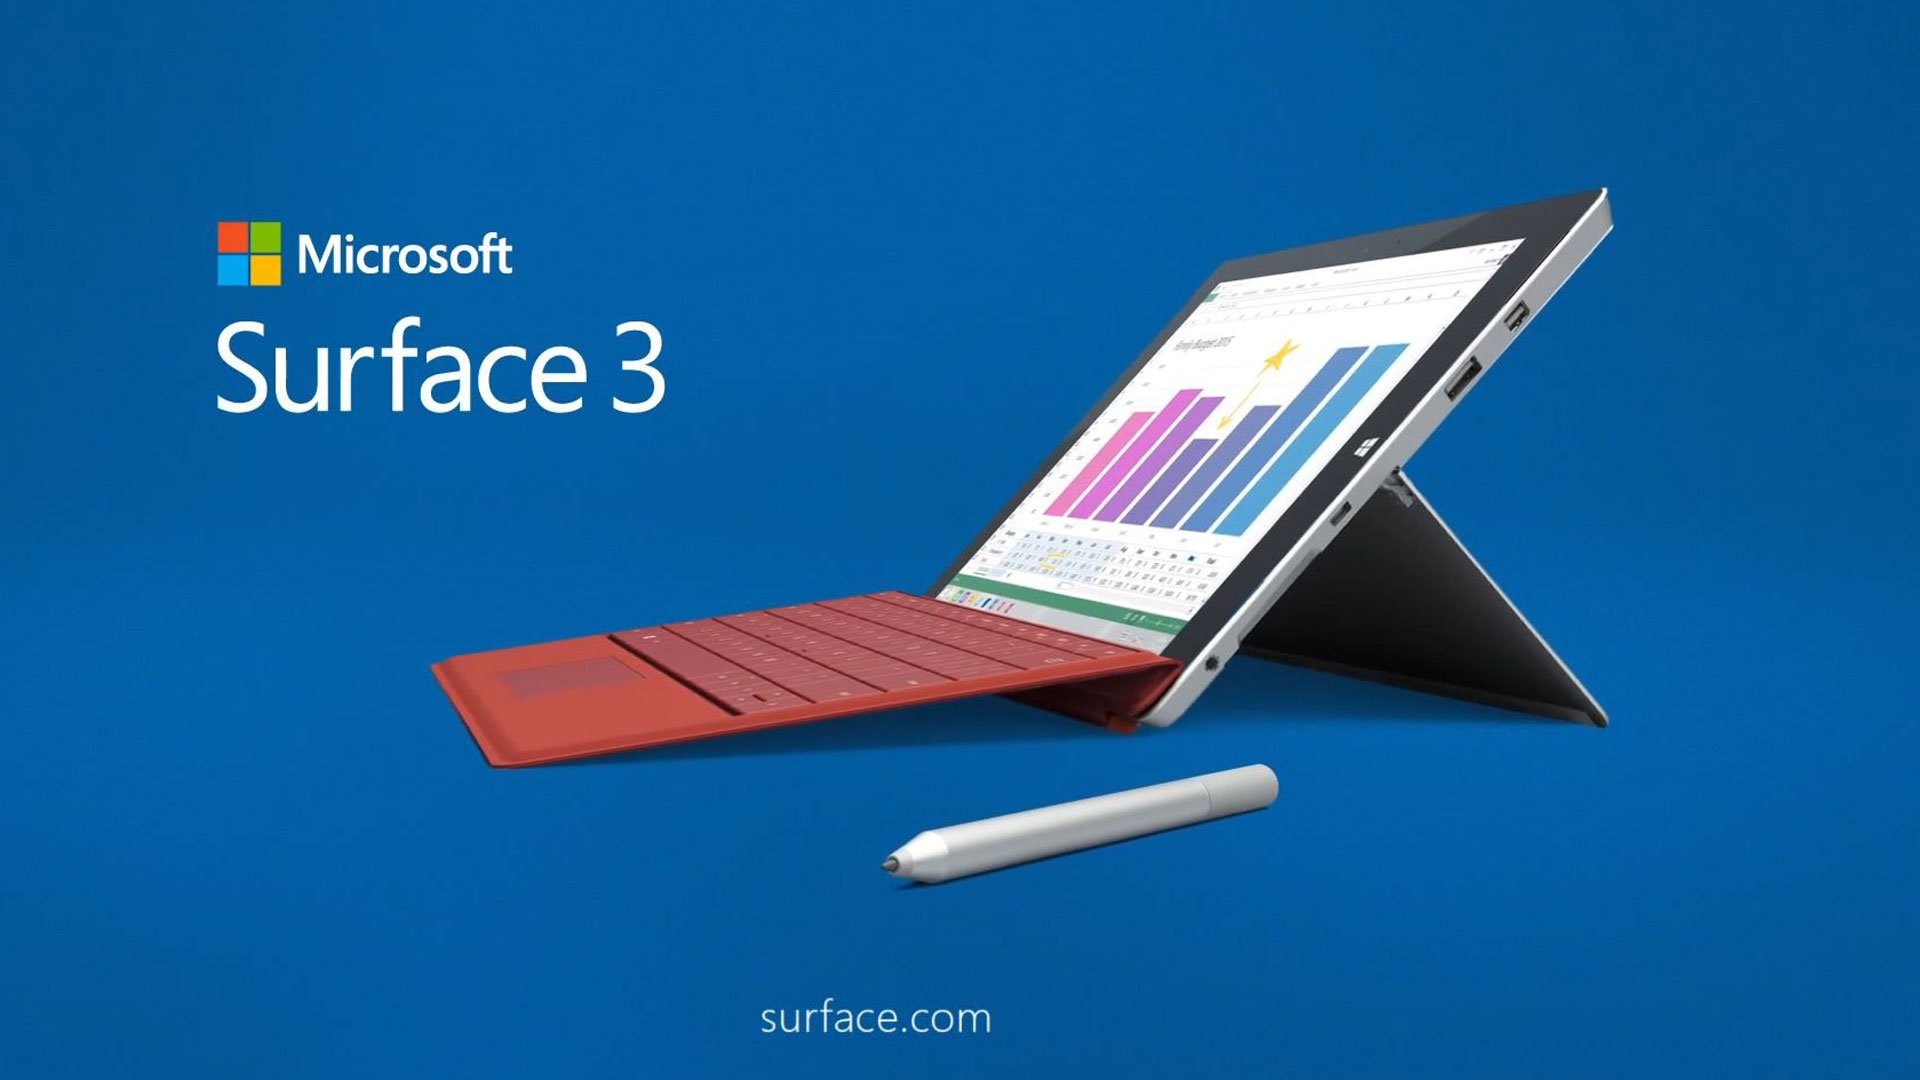 Id Nkryl together with Zoom Ddj Sr L X in addition Microsoft Surface also Microsoft Surface Tablet Bundle in addition Ridble Notebook Pollici Macbook X. on surface pro 3 bundle